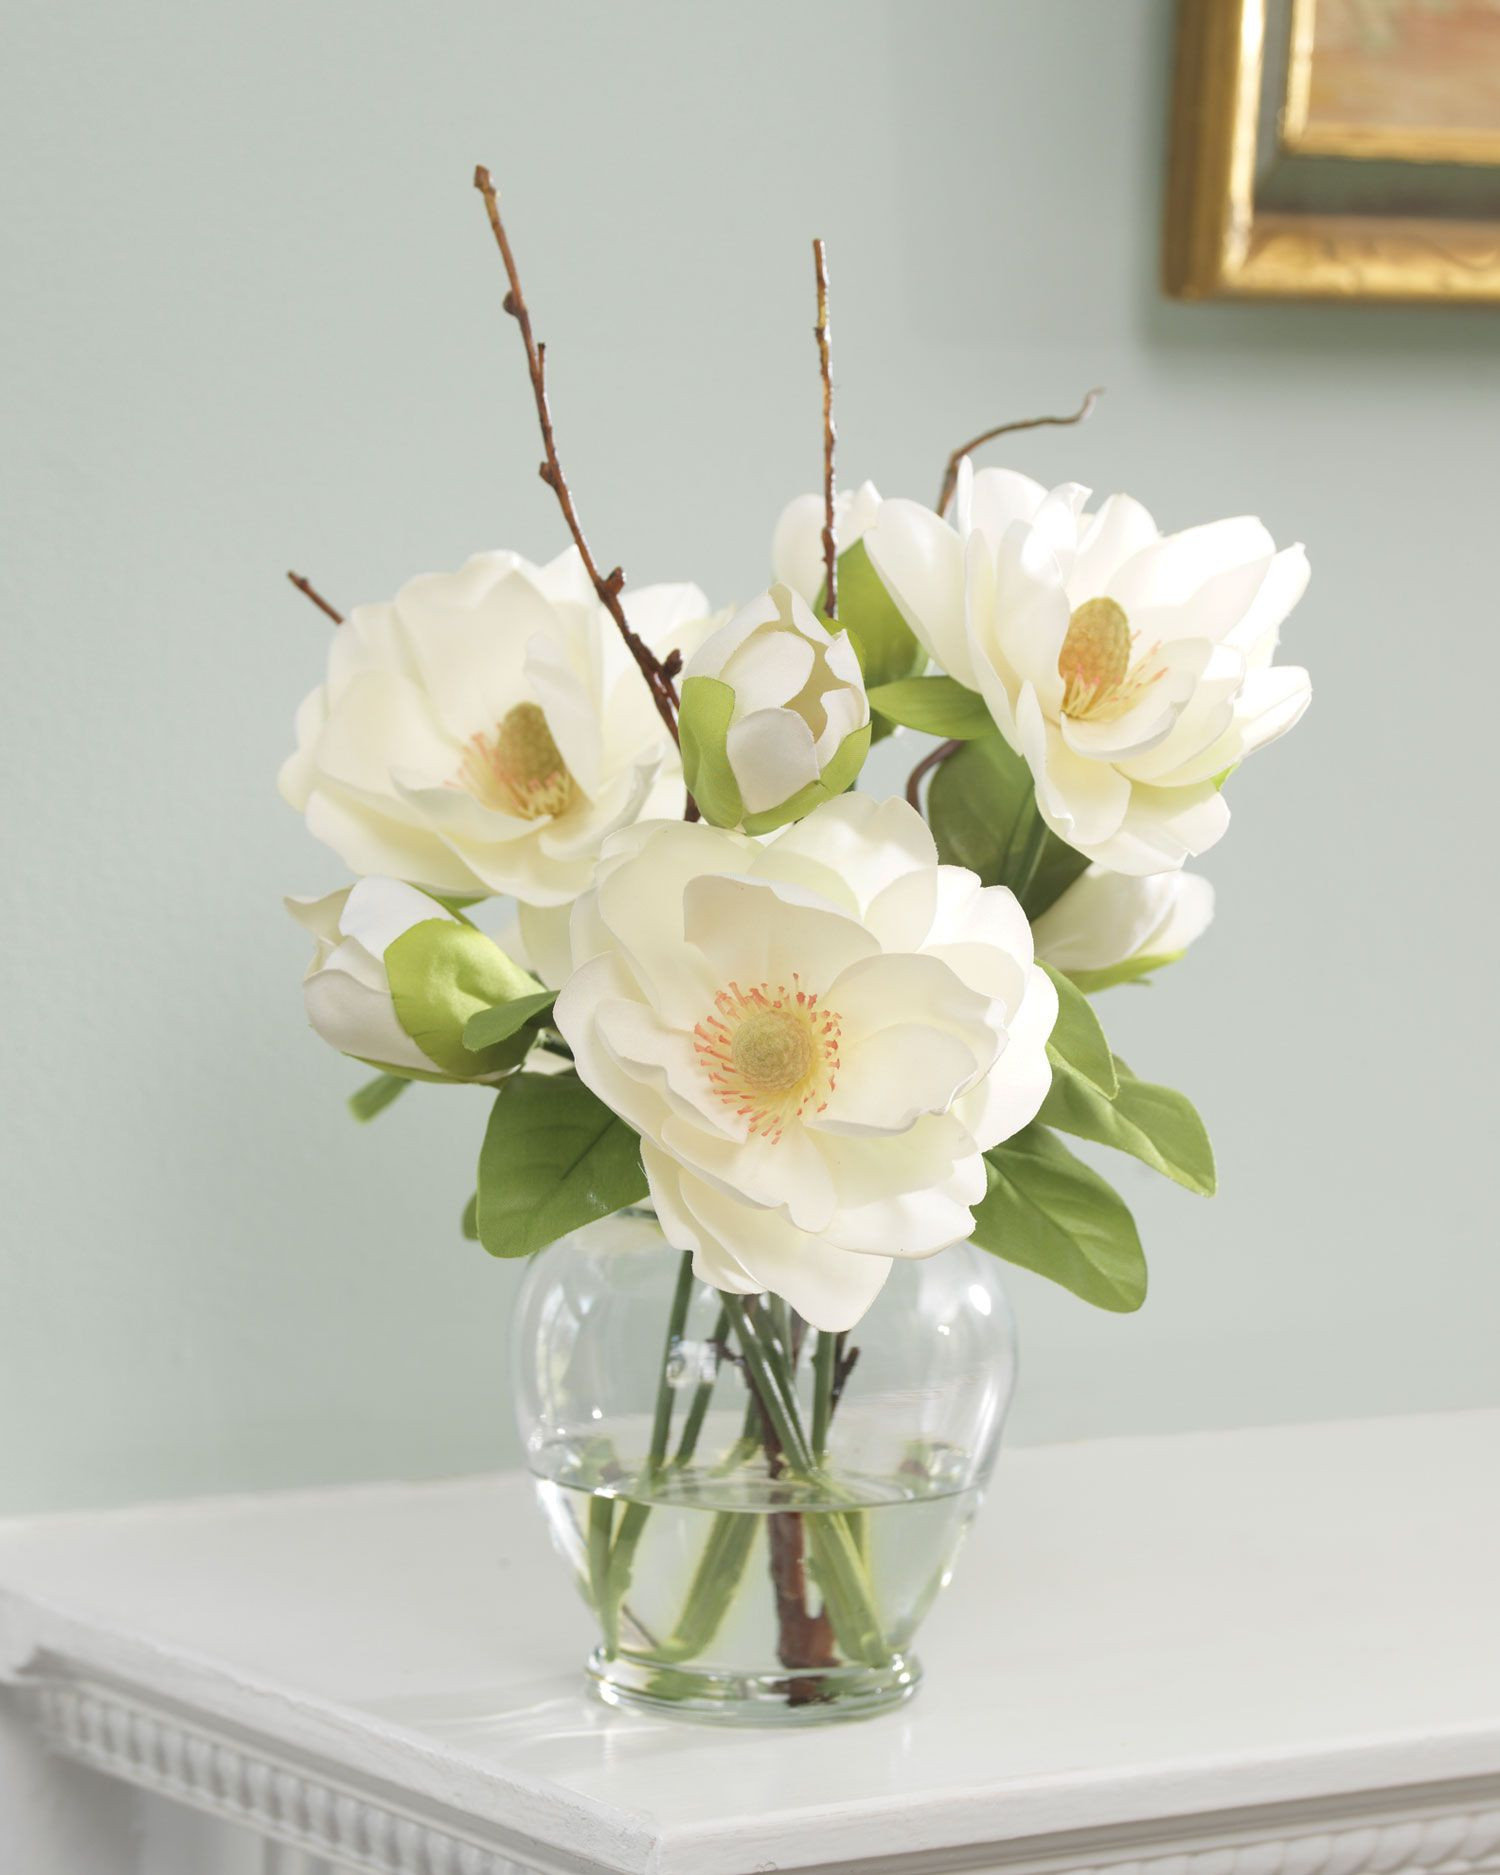 This fragrant and fragile silk magnolia flower has inspired many an artist Our ethereal arrangement of silk magnolias in whispering white may just spark